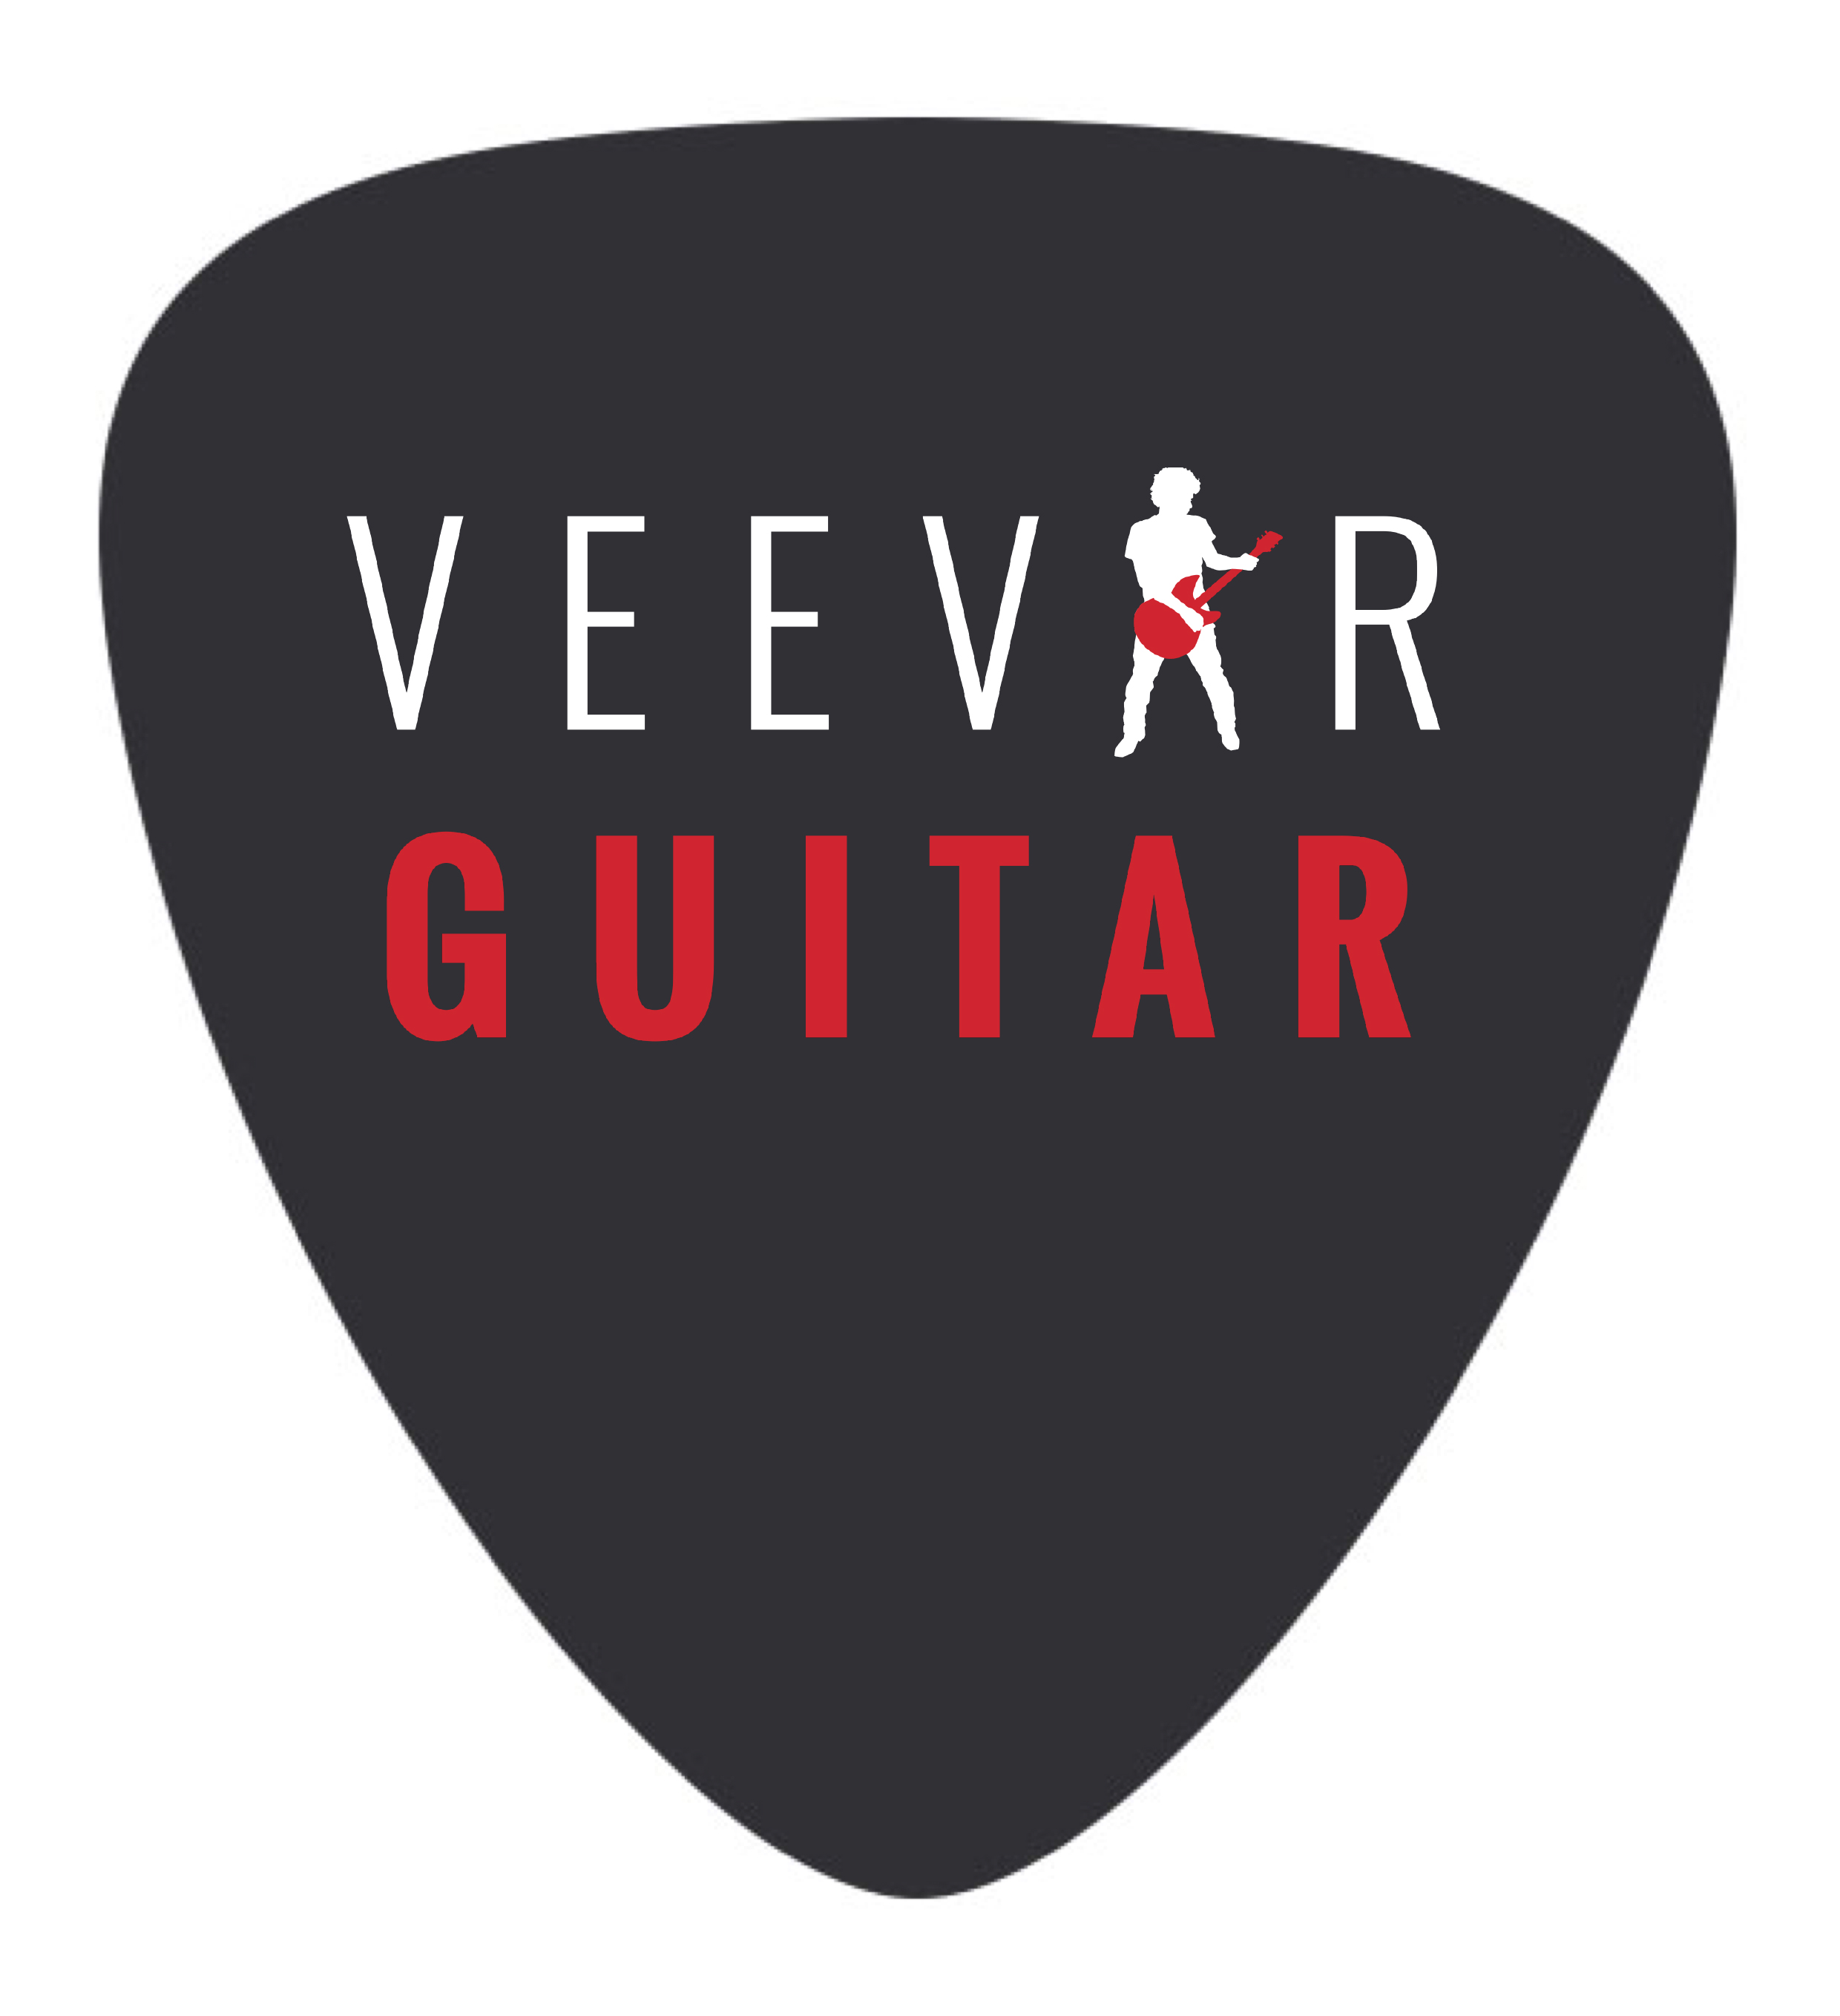 veevar guitar review